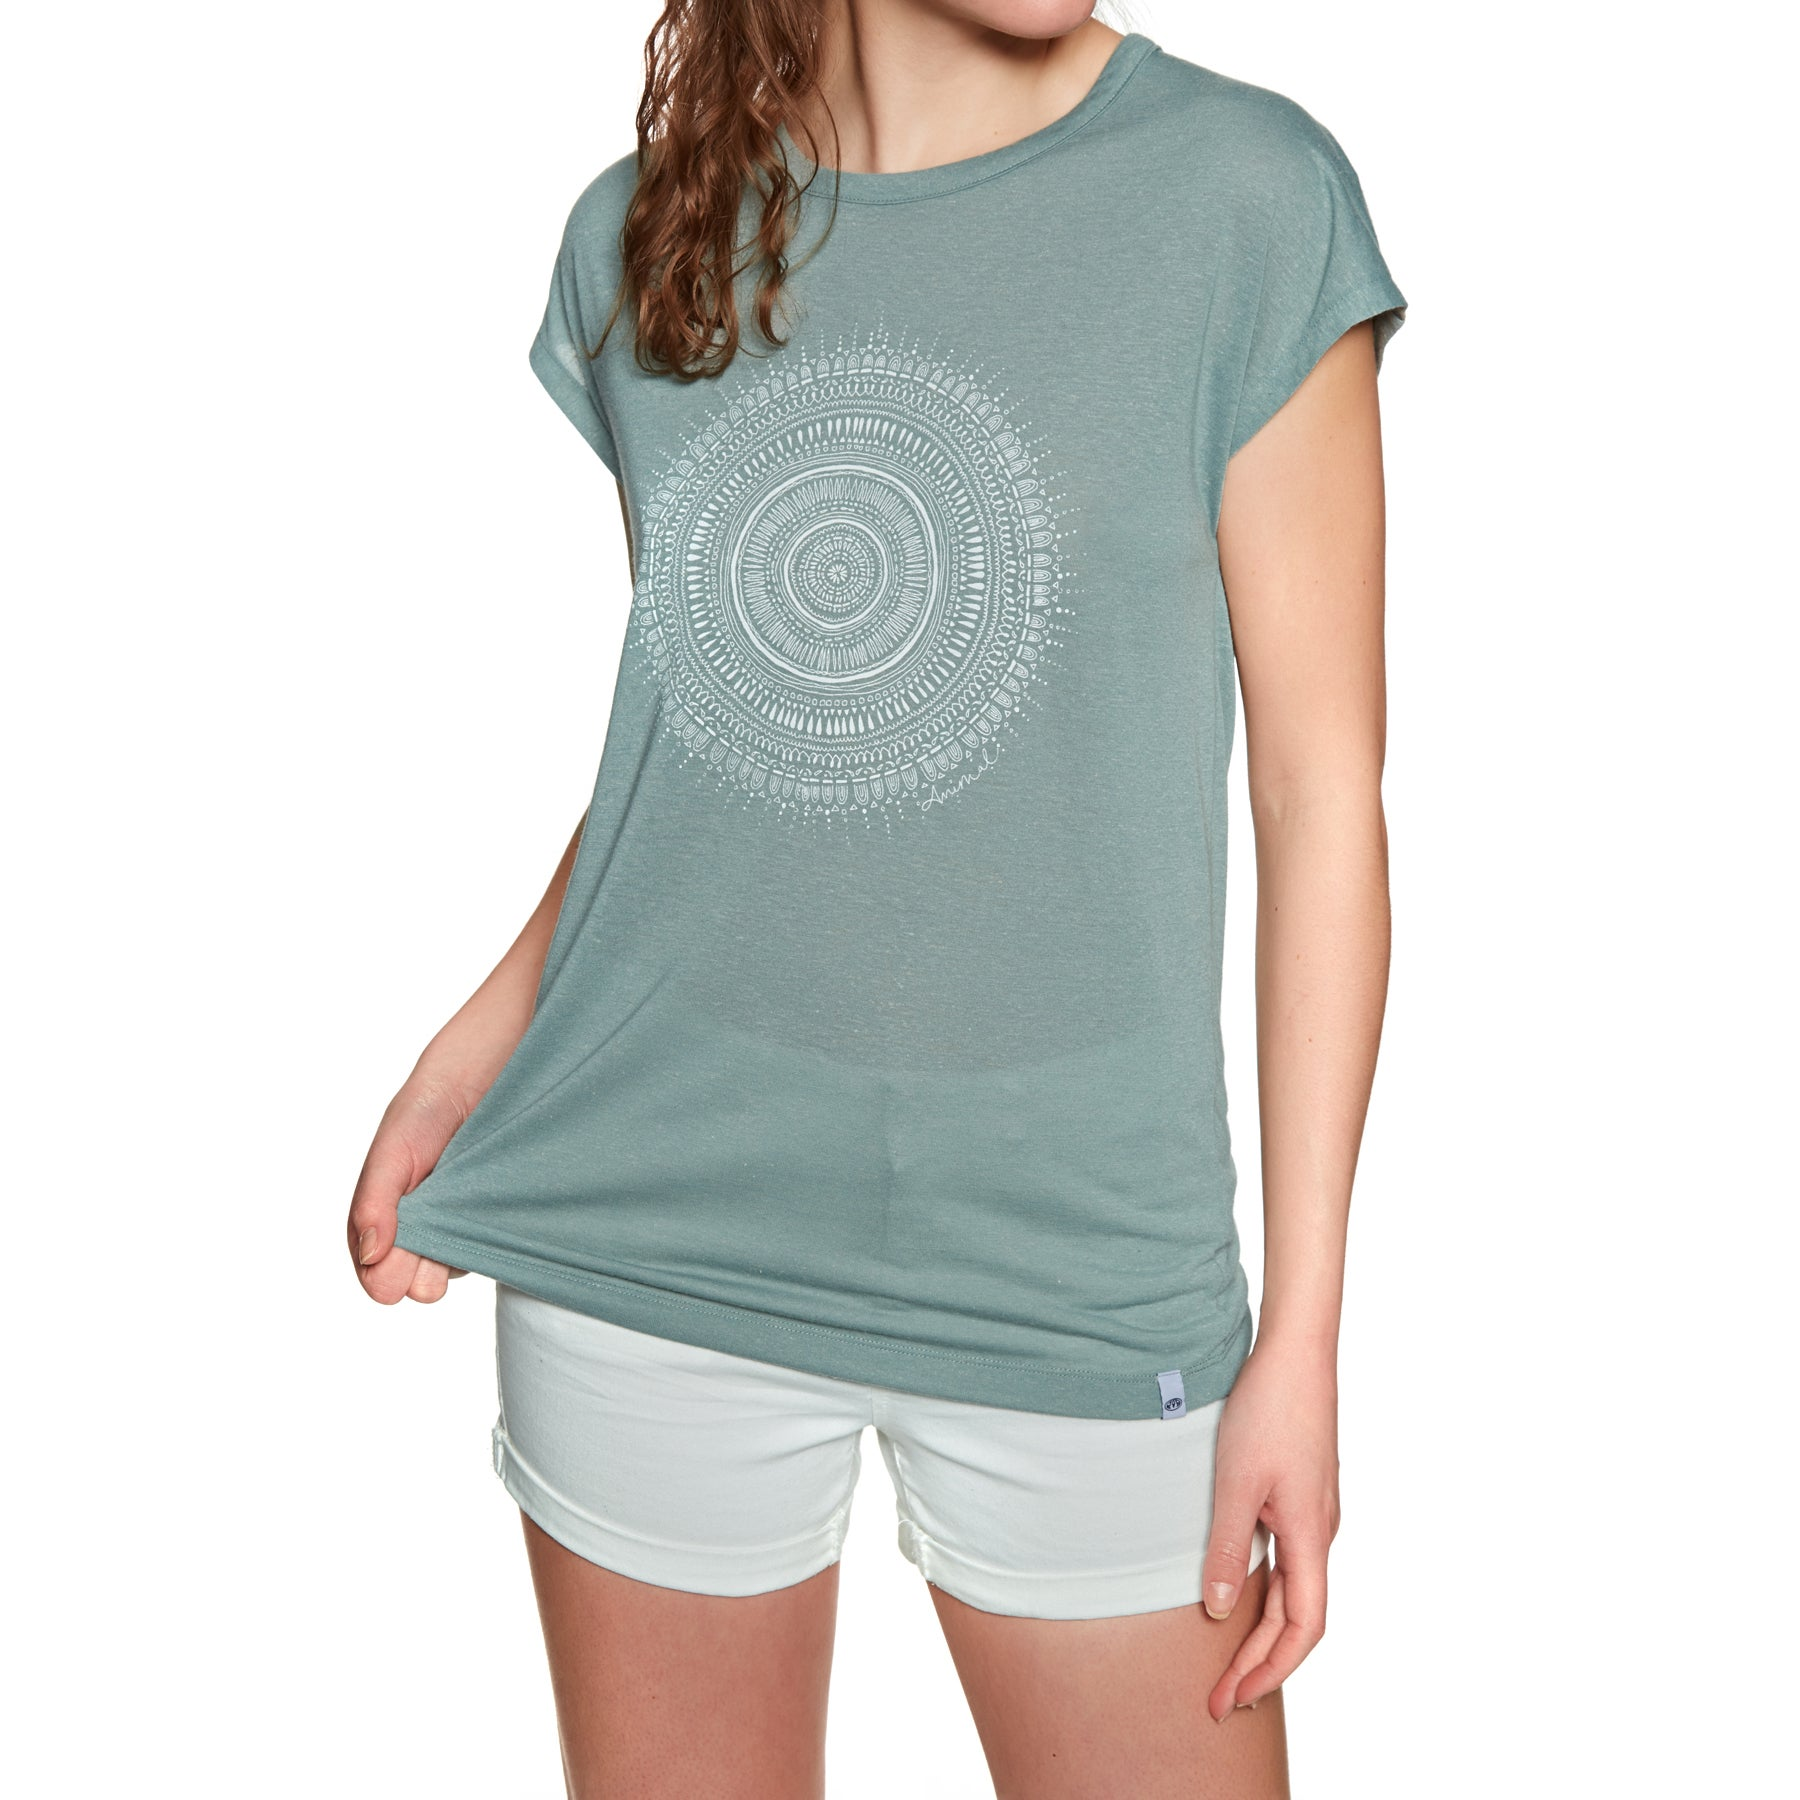 Animal Ethnique Womens Short Sleeve T-Shirt - Chinois Green